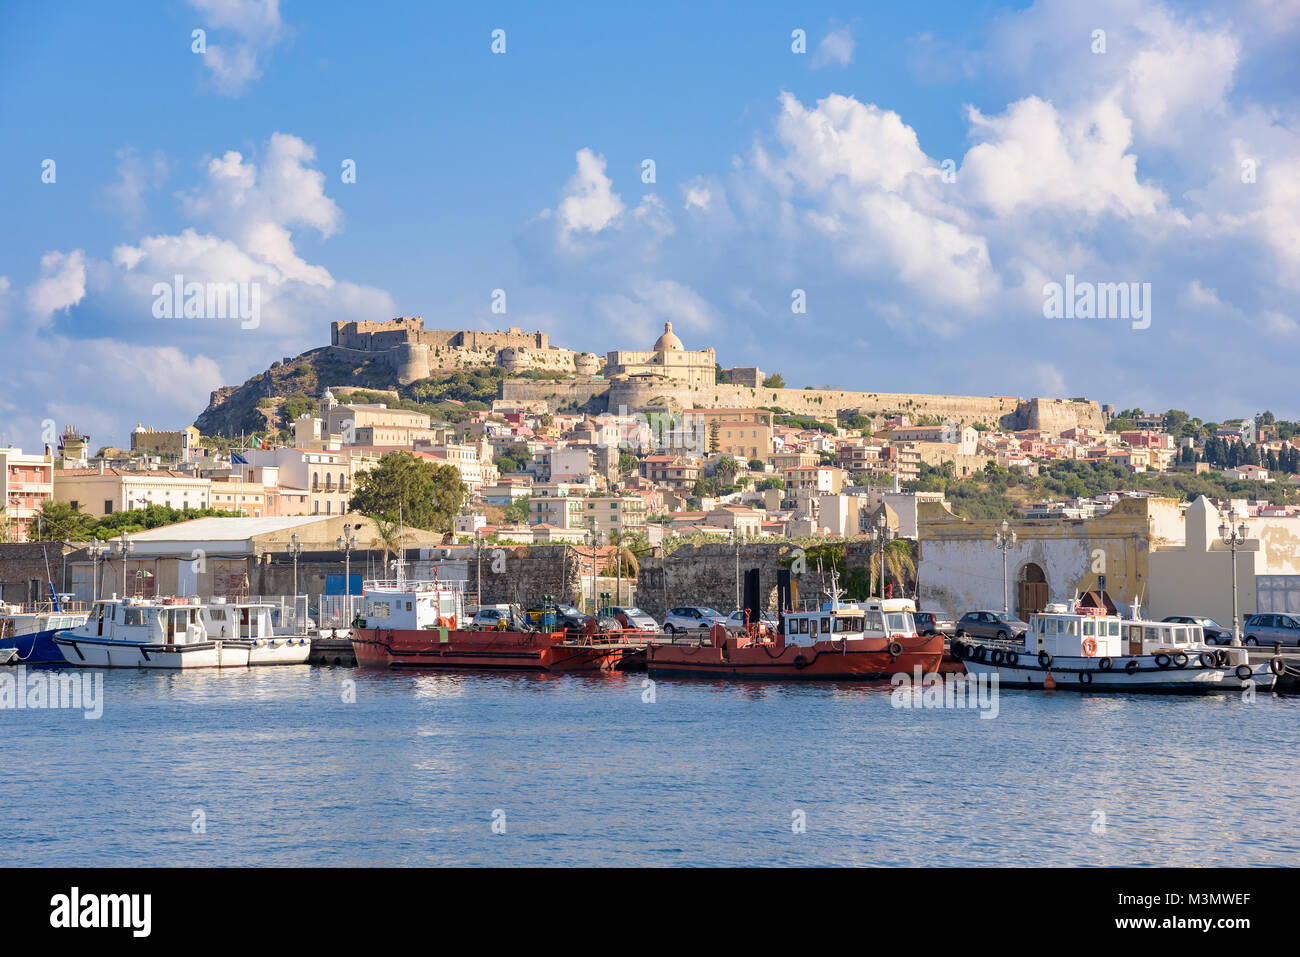 View of Milazzo town from the sea, Sicily, Italy Stock Photo